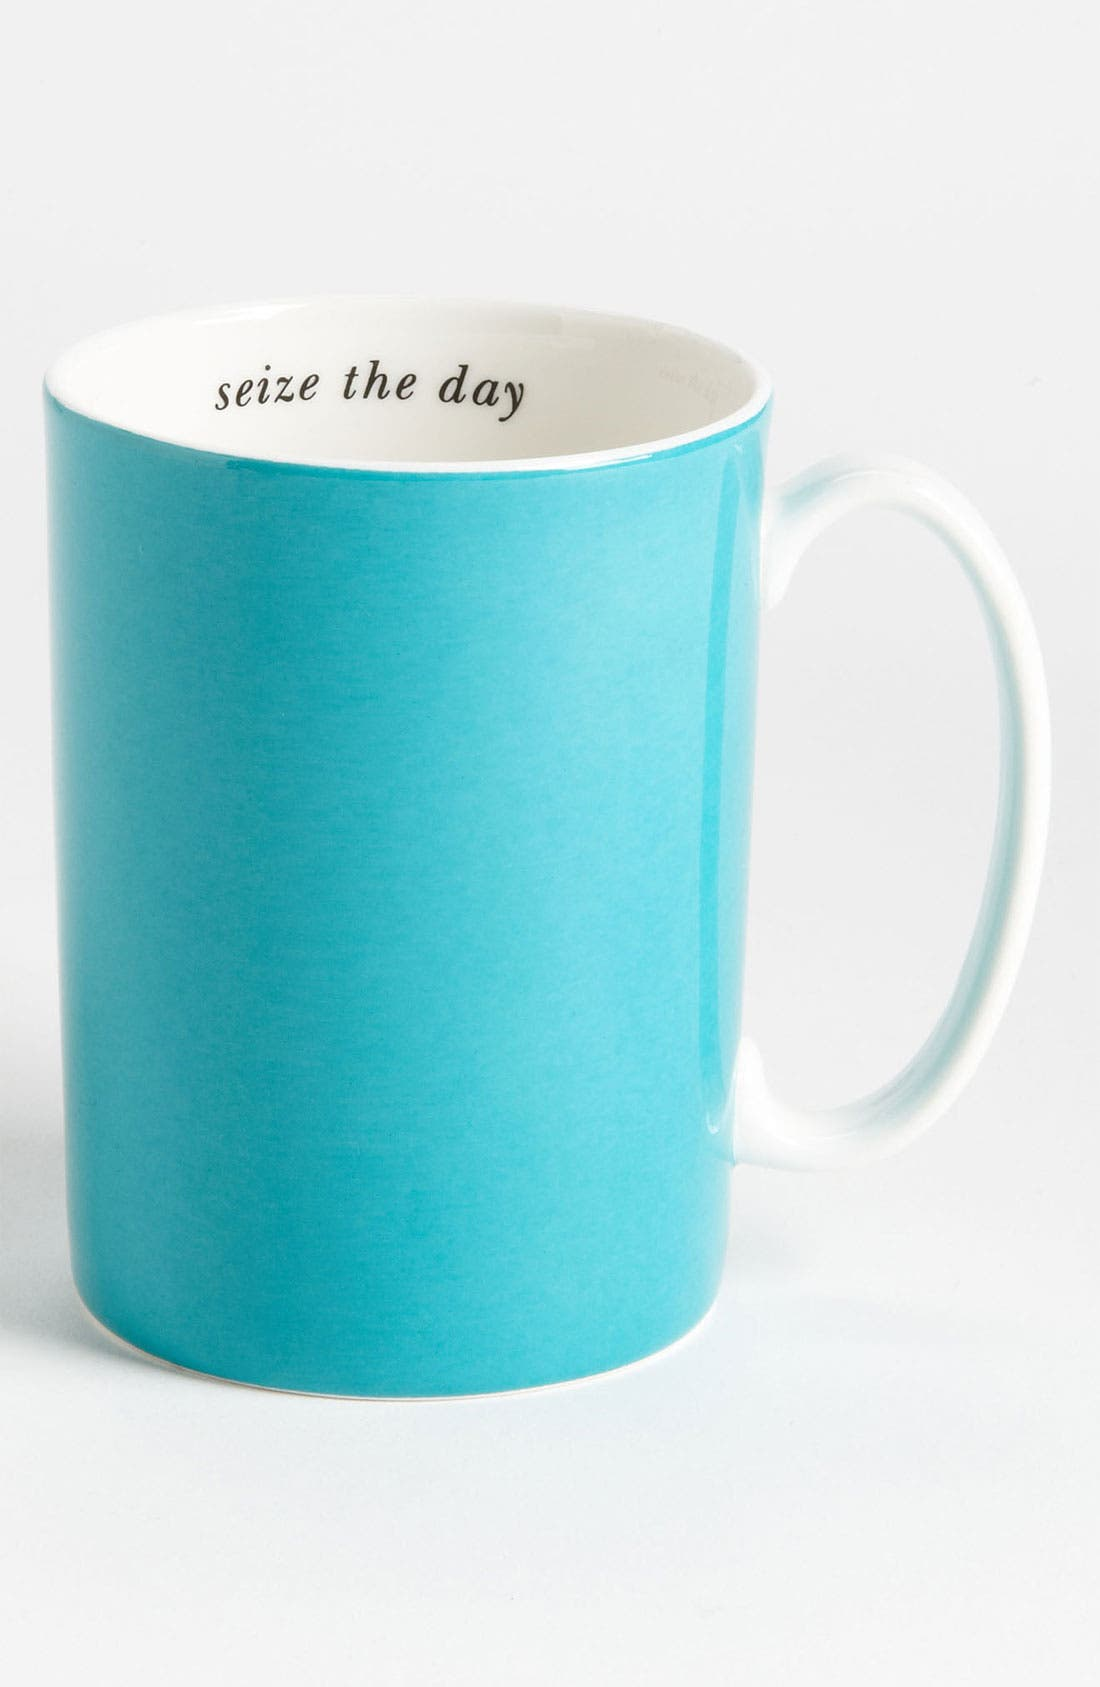 Main Image - kate spade new york 'say the word - seize the day' porcelain mug